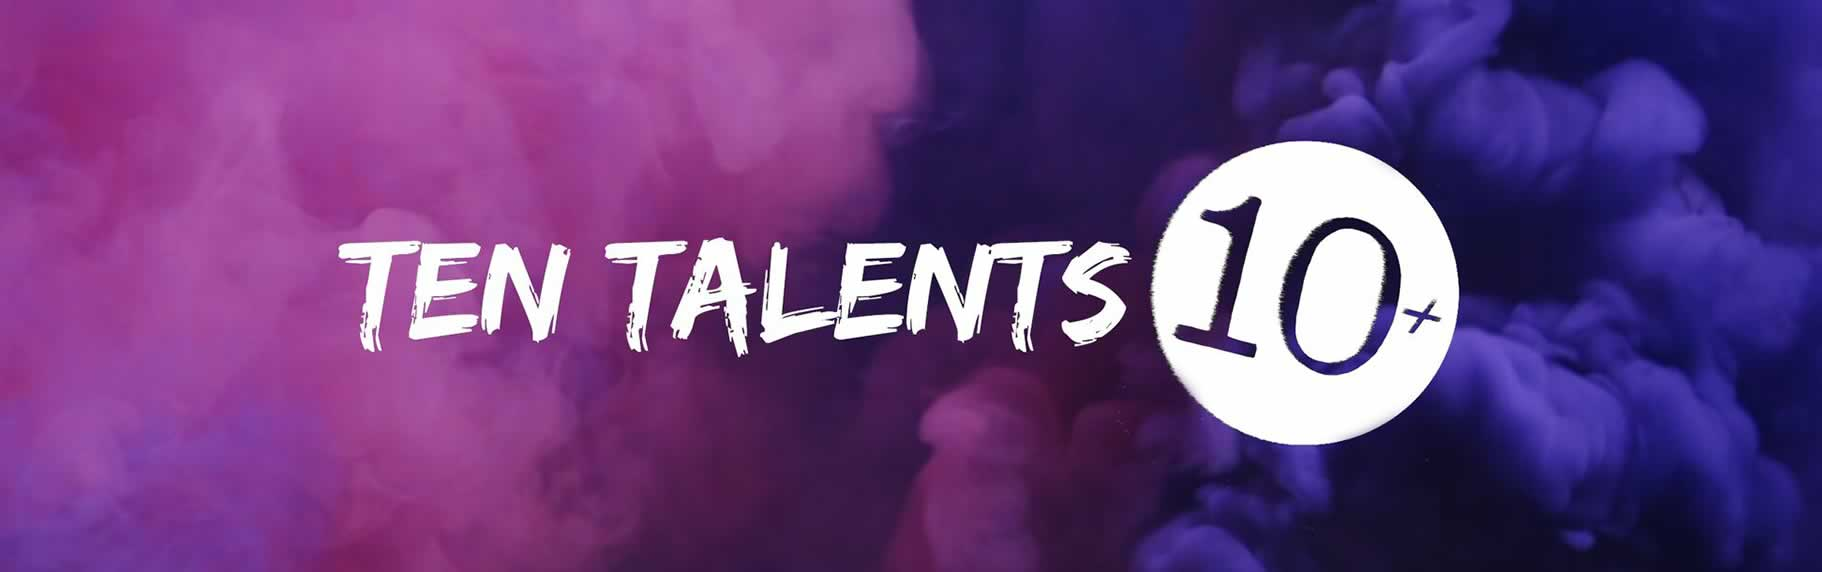 10 Talents Band